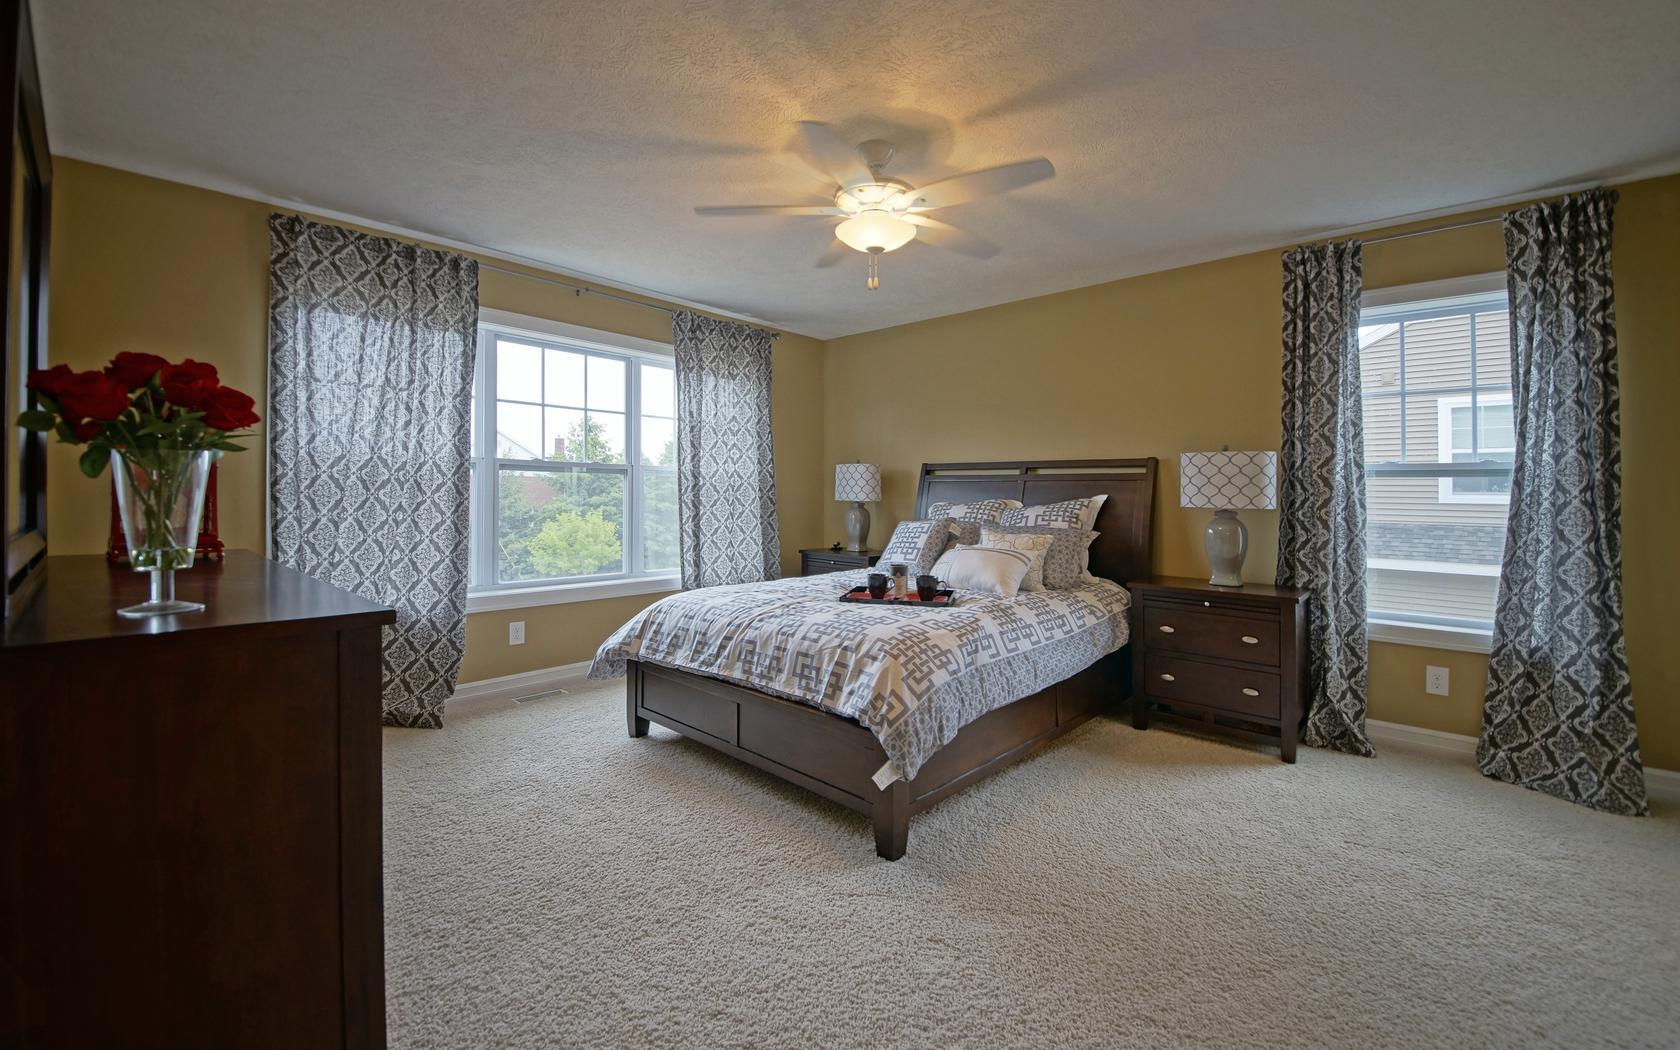 Bedroom featured in the Westwood By Mayberry Homes in Flint, MI